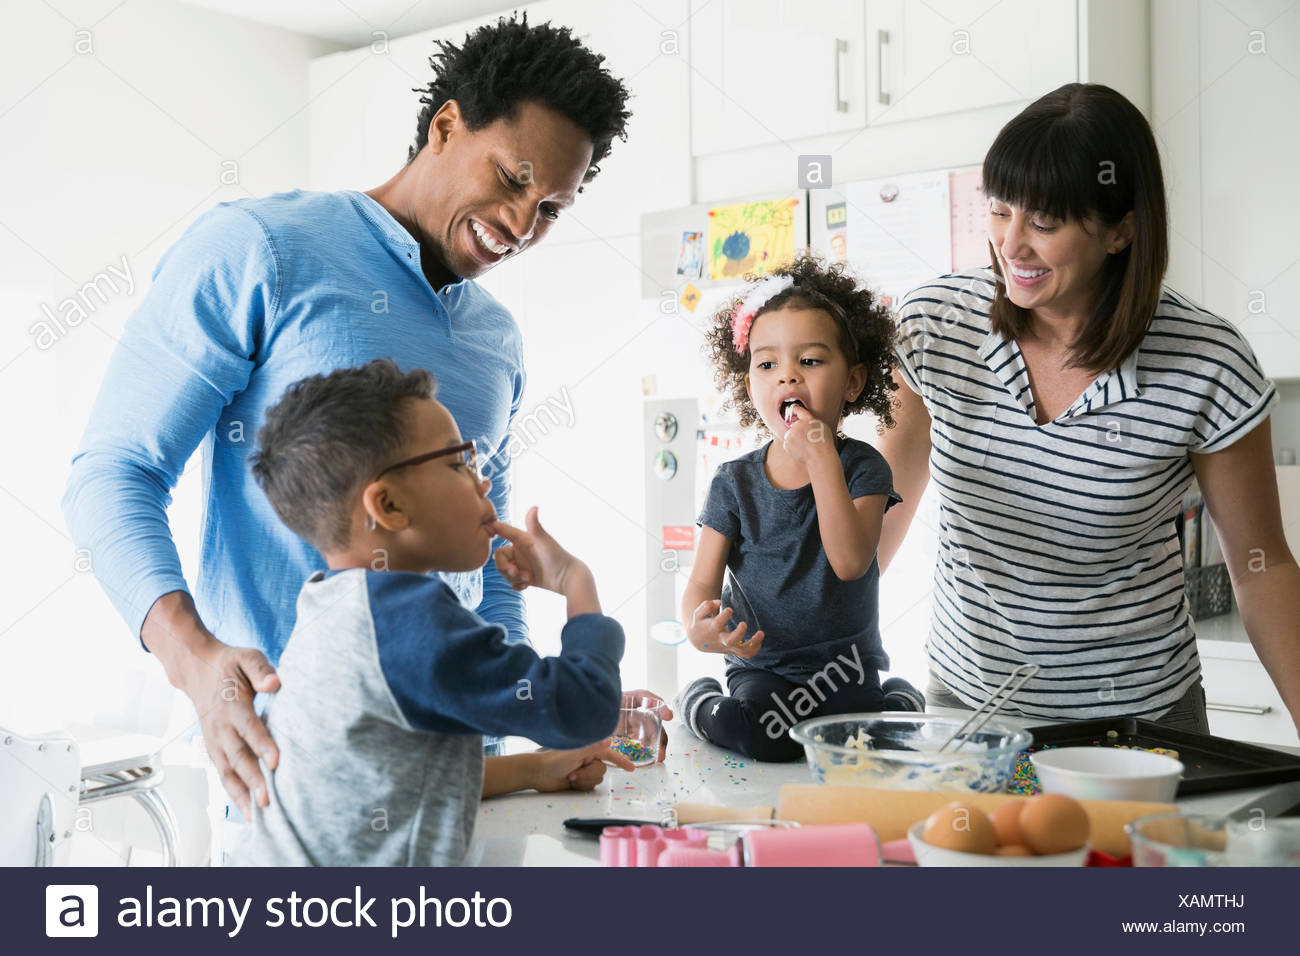 Brother and sister baking tasting cookie dough - Stock Image